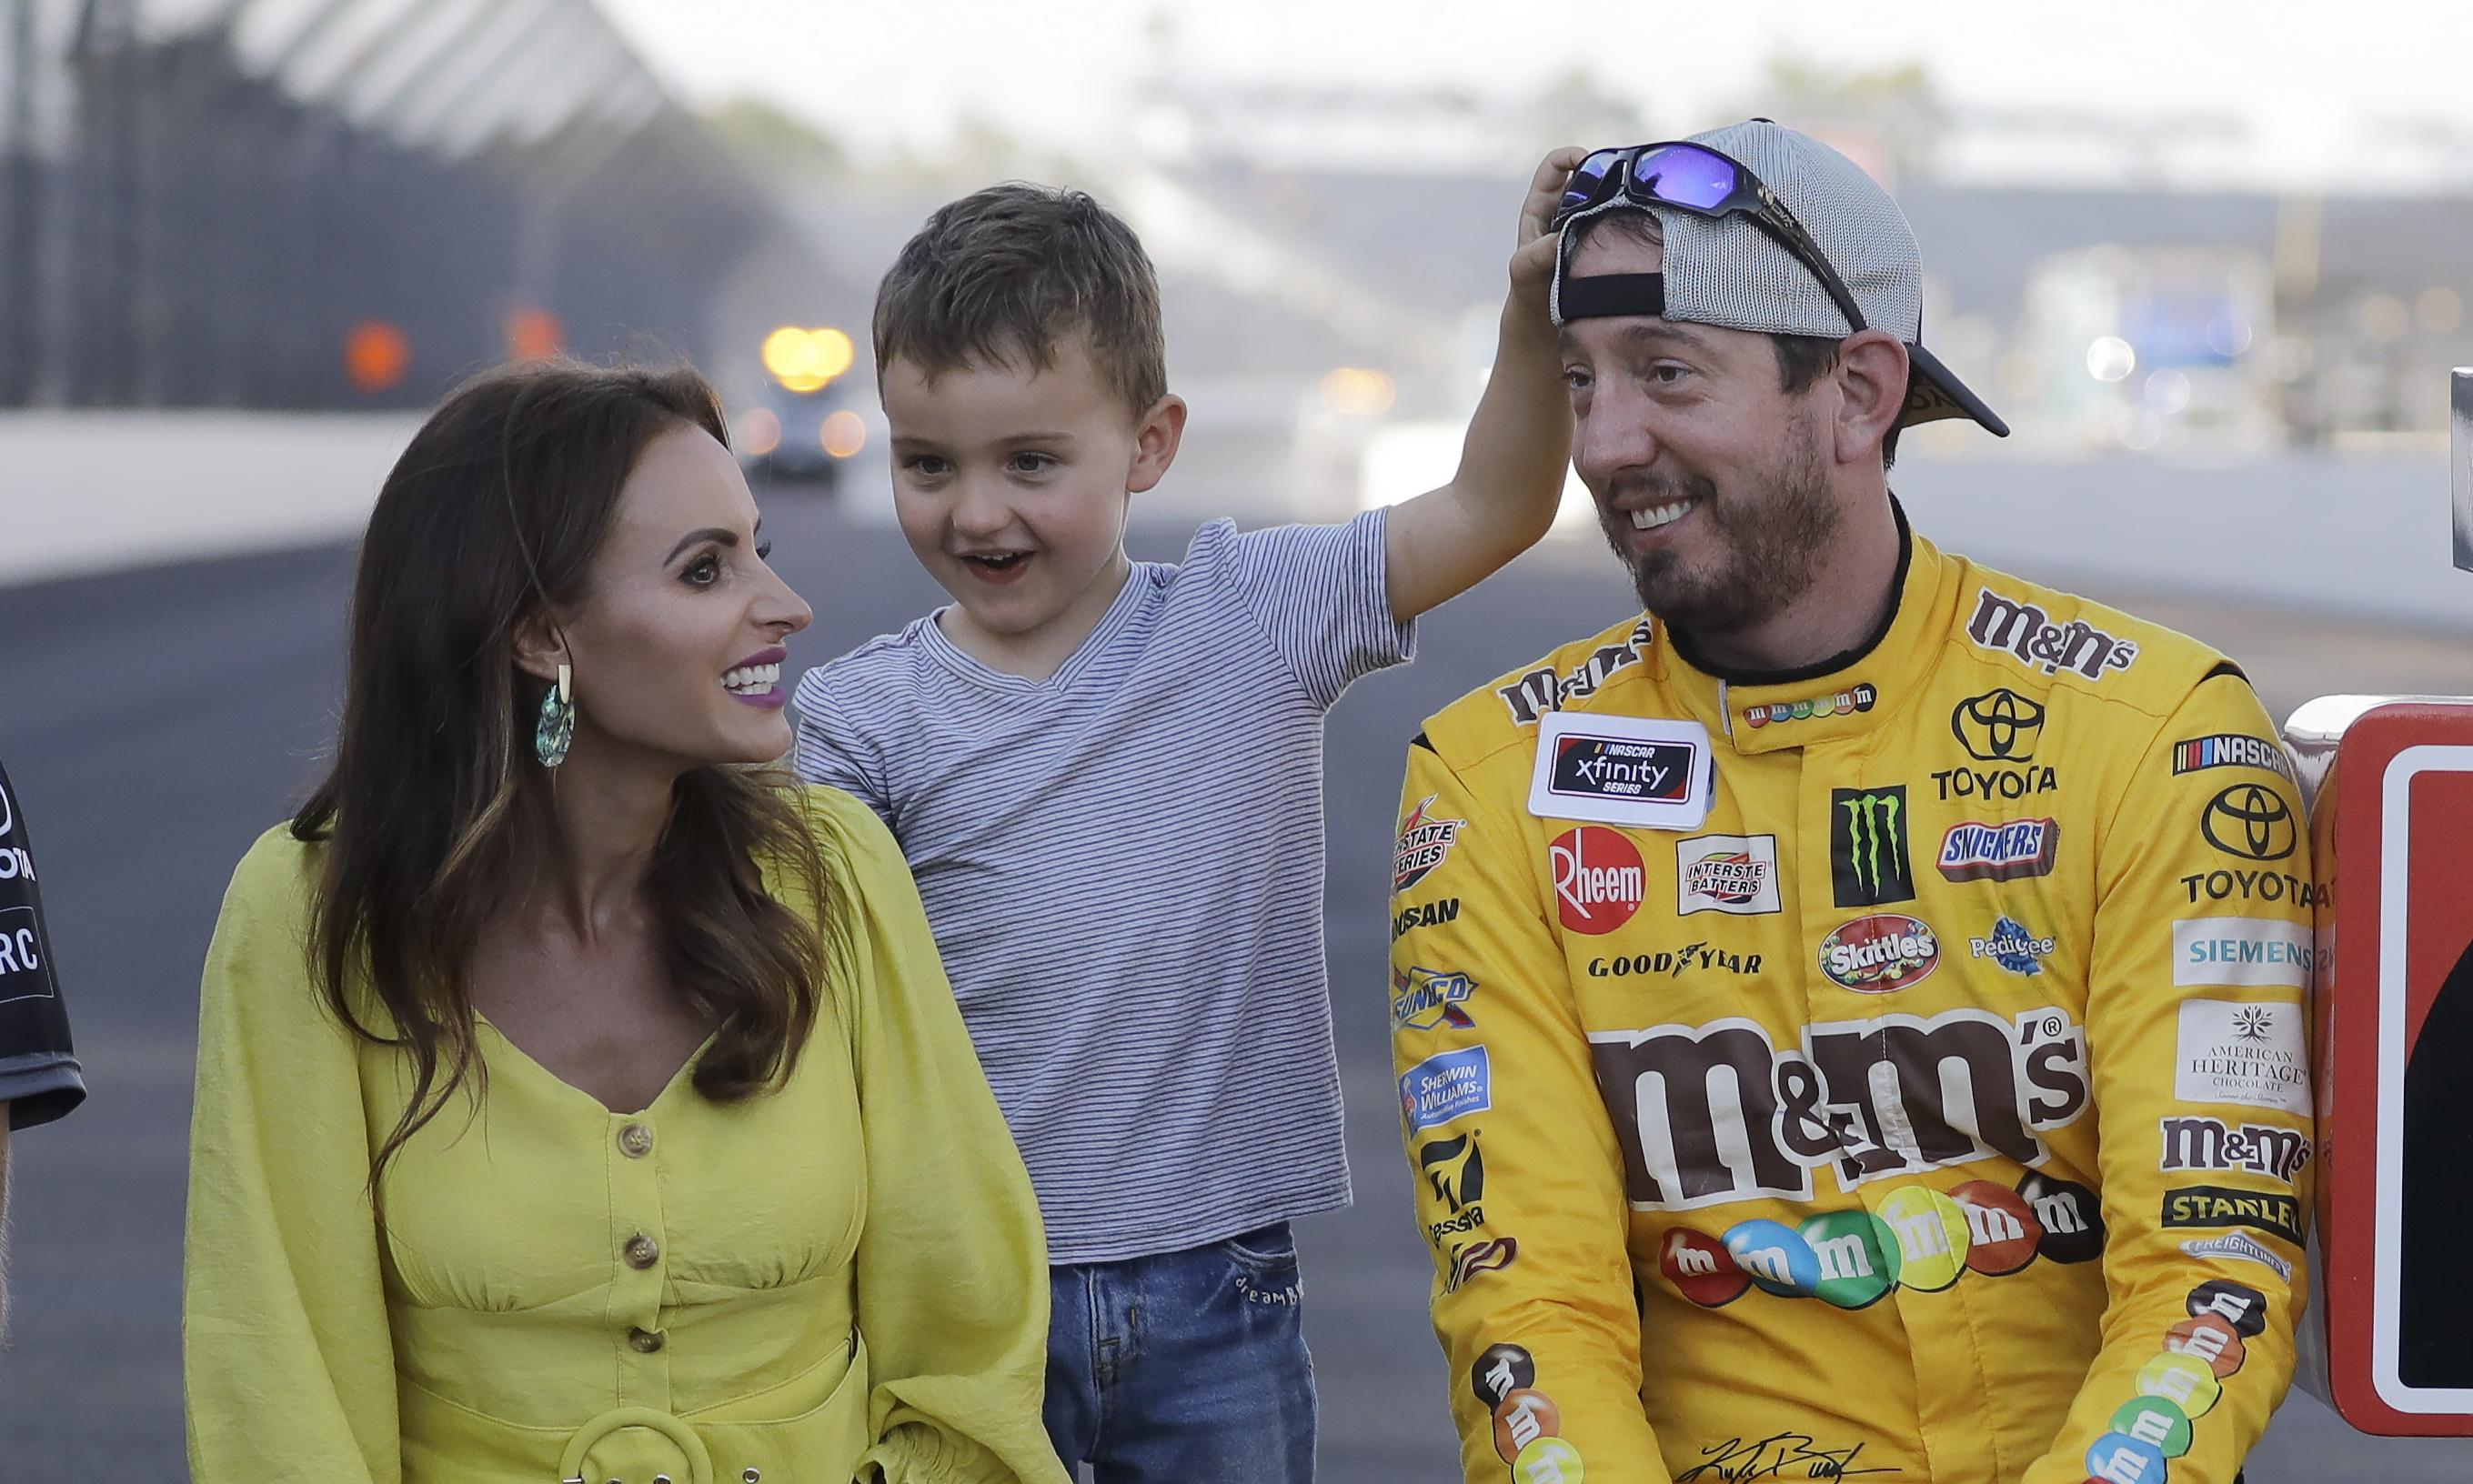 Kyle Busch wins season finale to claim his second Nascar title